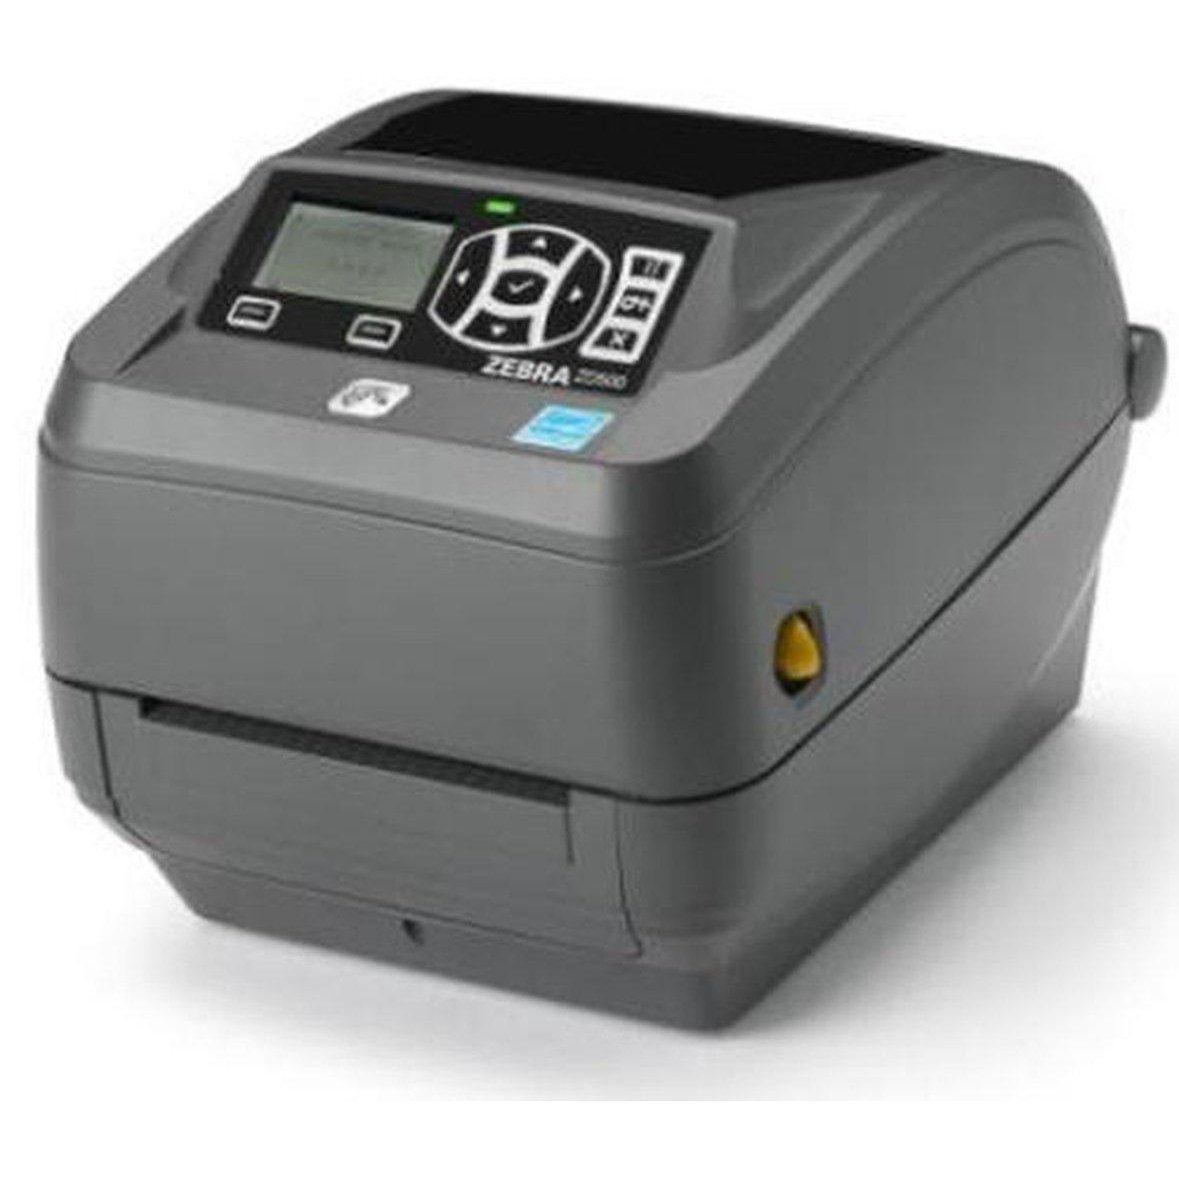 Zebra ZD500 DT / TT Label Printer 330DPI Ethernet, USB | ZD50043-T0E200FZ Label Printer Zebra